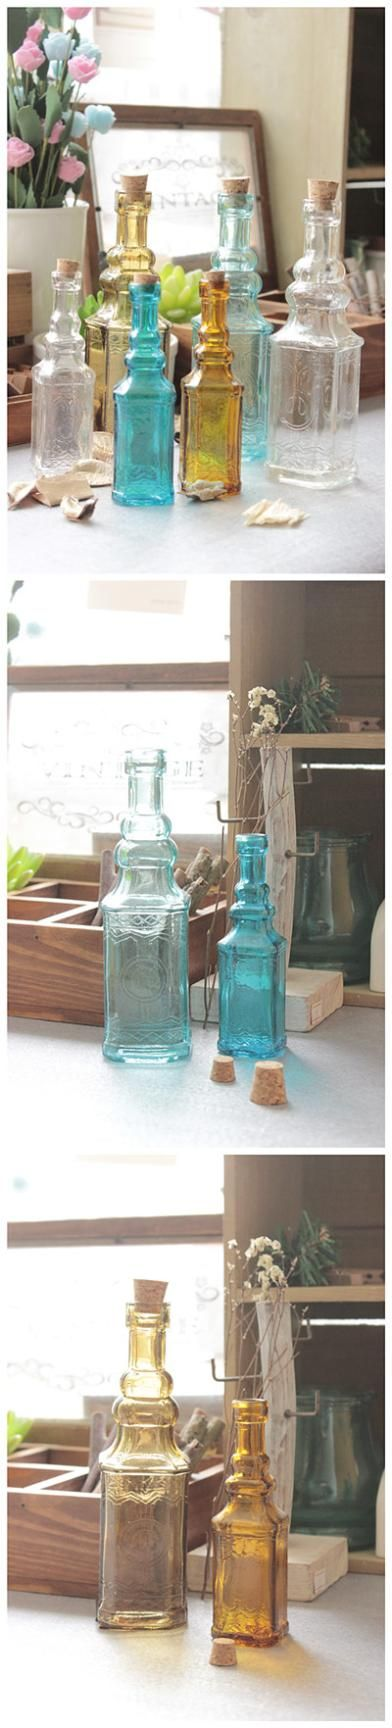 Free Shipping New 2015 Zakka Small Vintage Carved Glass Vase  Tower Vase For Home Decoration Photo Prop Vintage Glass Bottle-in Vases from Home & Garden on Aliexpress.com | Alibaba Group